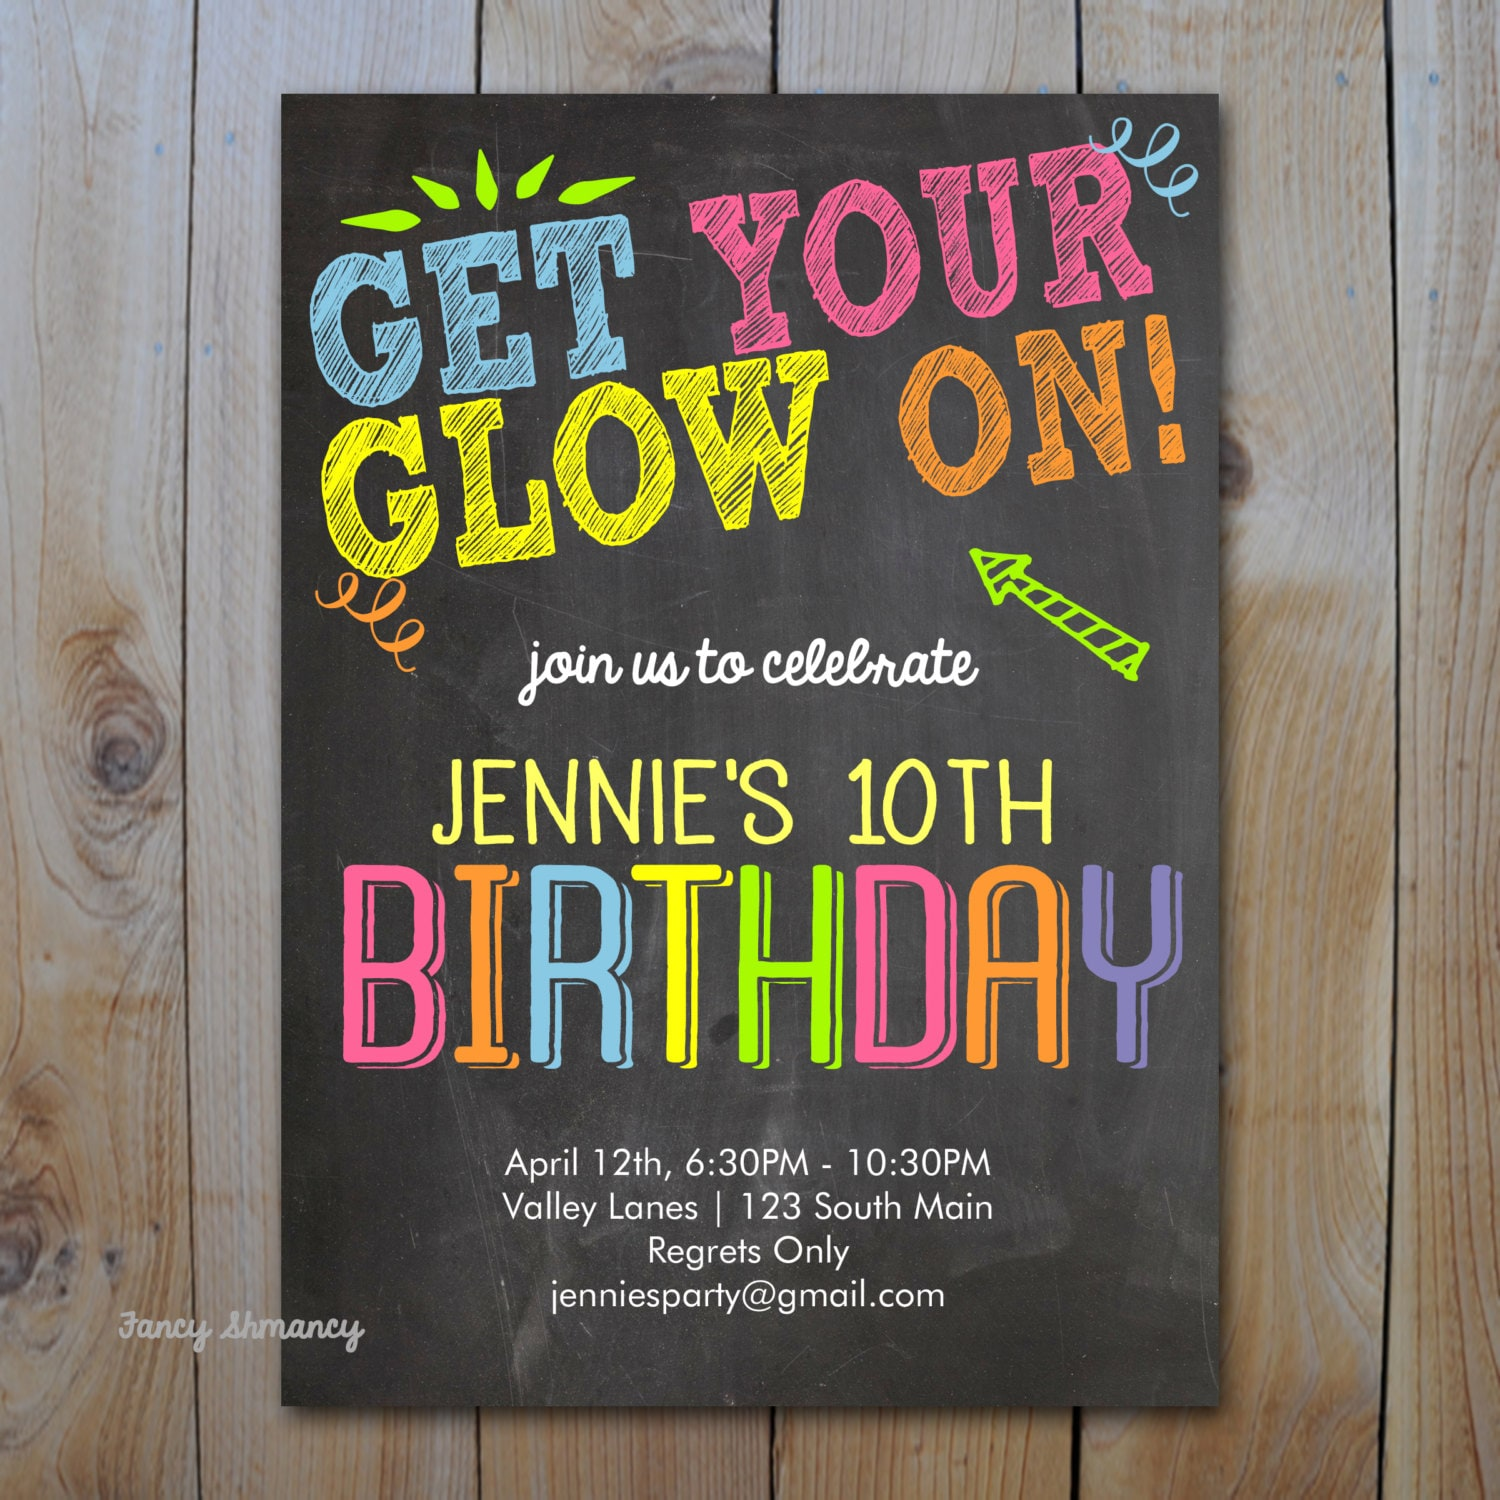 Neon Birthday Invitation / Get Your Glow On / Glow in the Dark